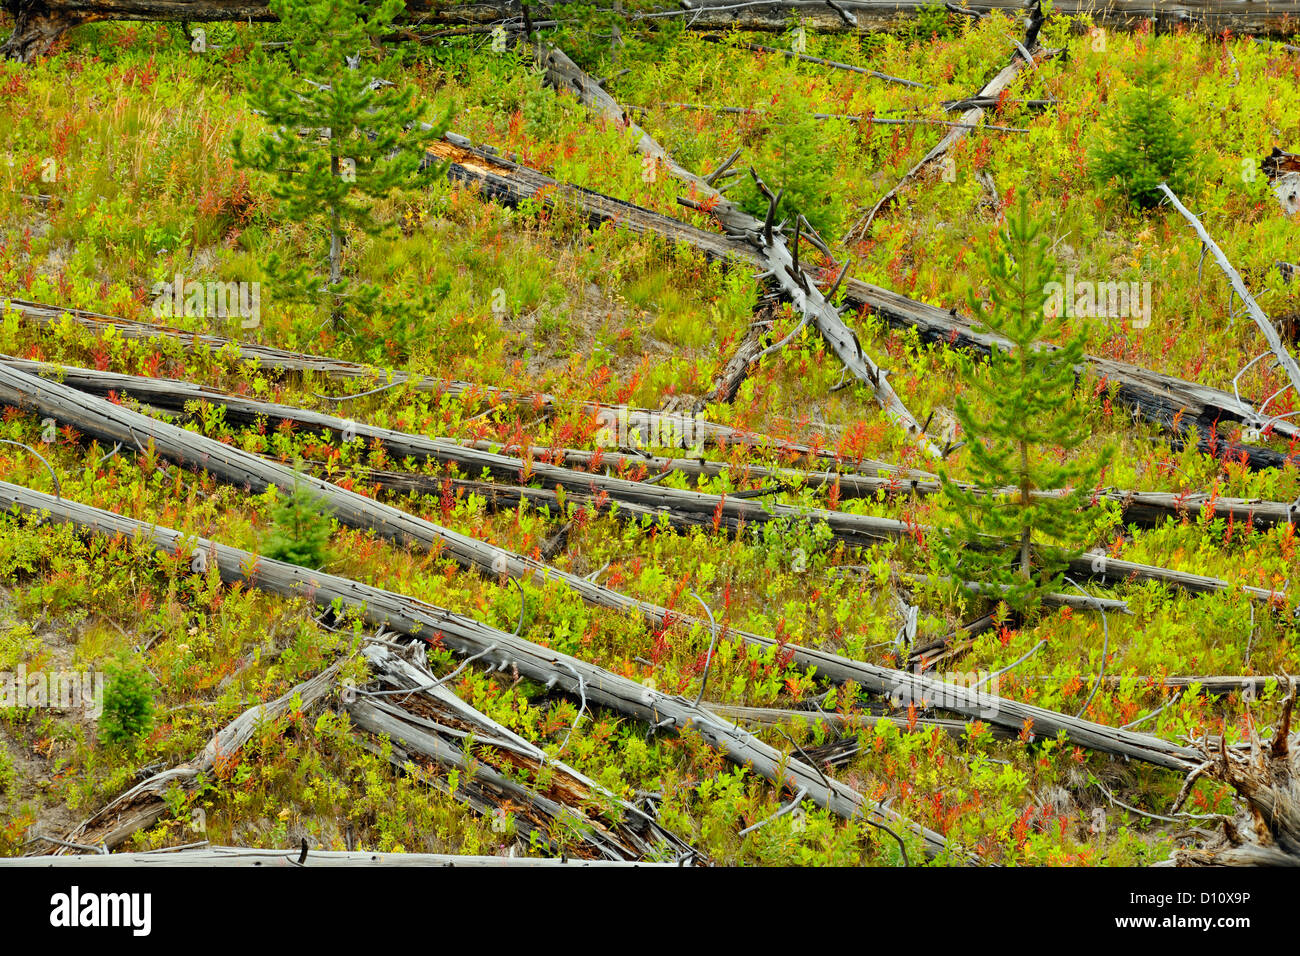 Dead snags and regenerating pines on the Blacktail Deer Plateau, Yellowstone NP, Wyoming, USA - Stock Image